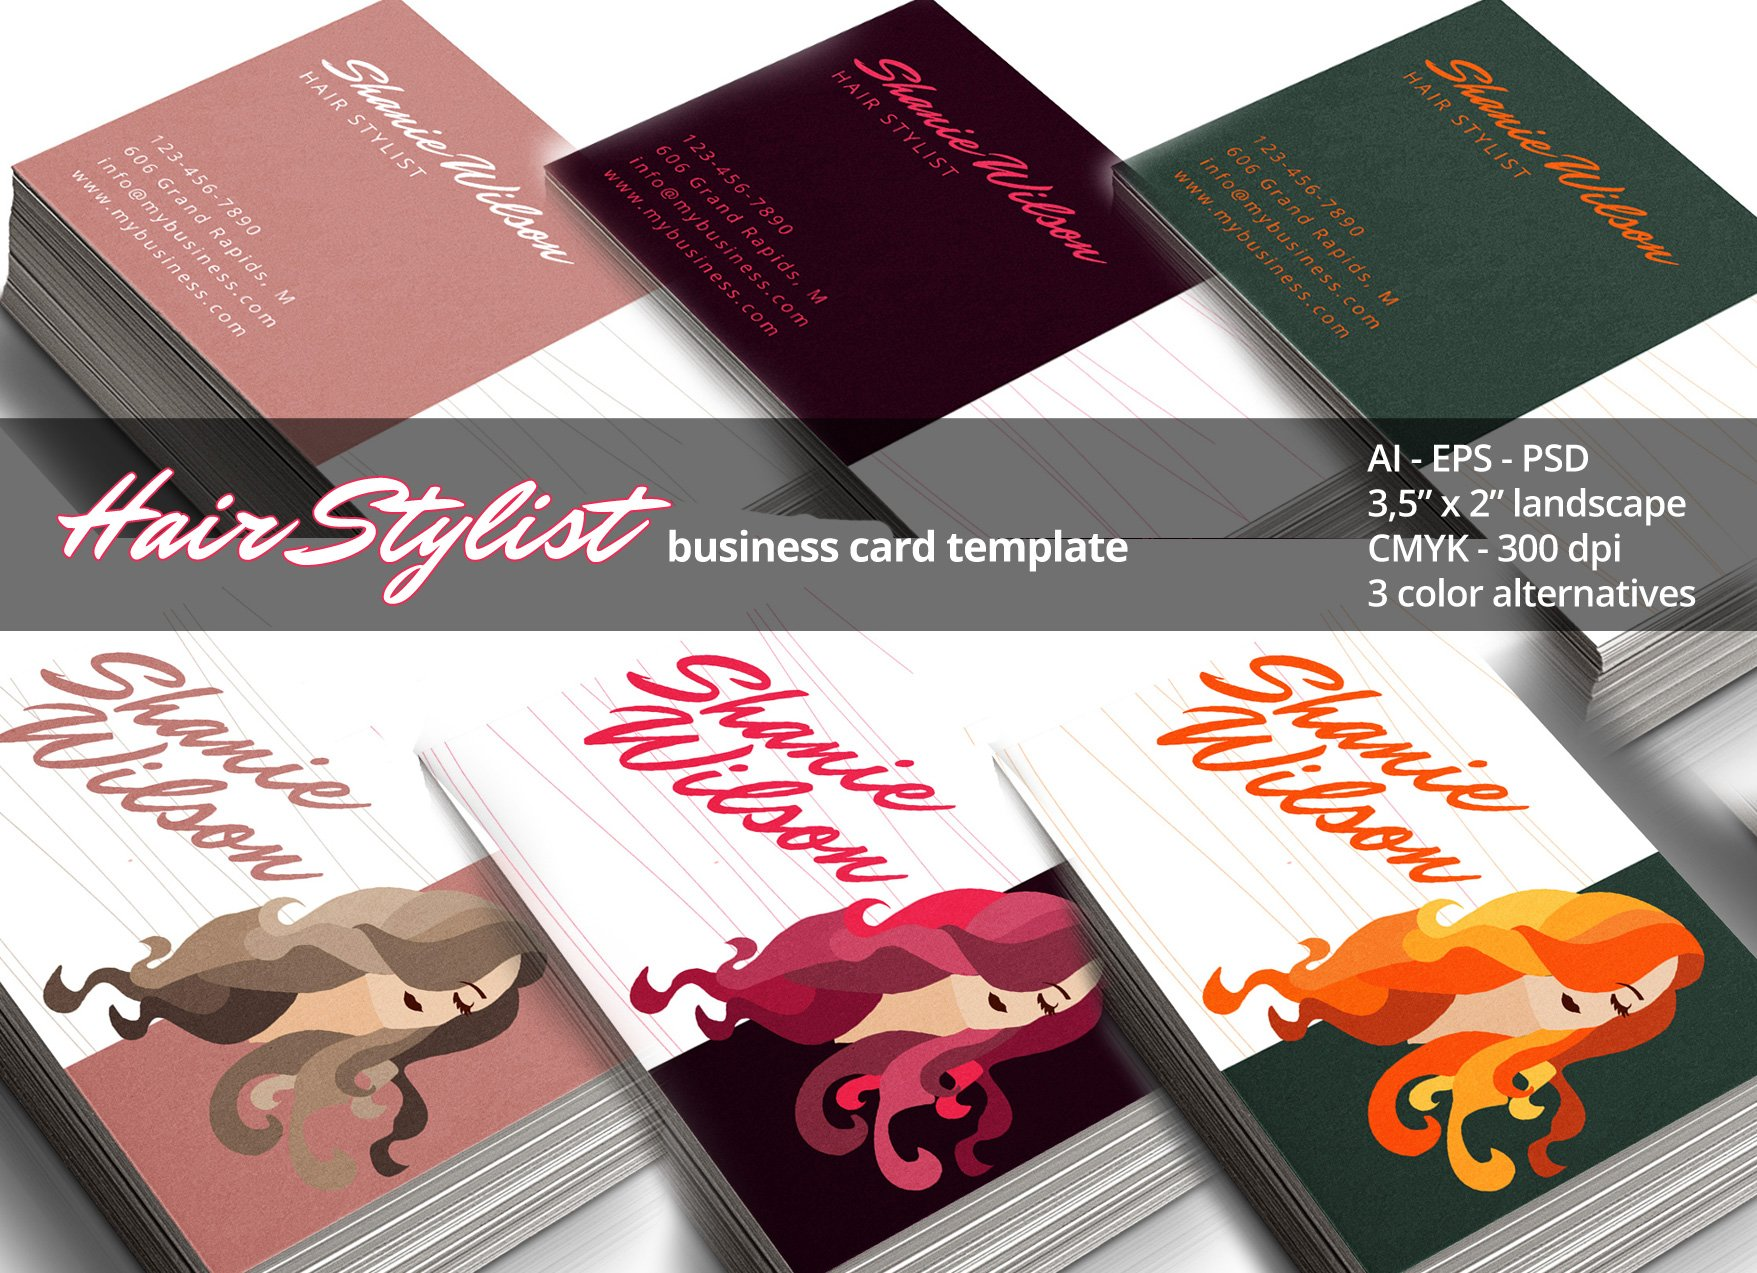 Hair stylist business card business card templates creative market colourmoves